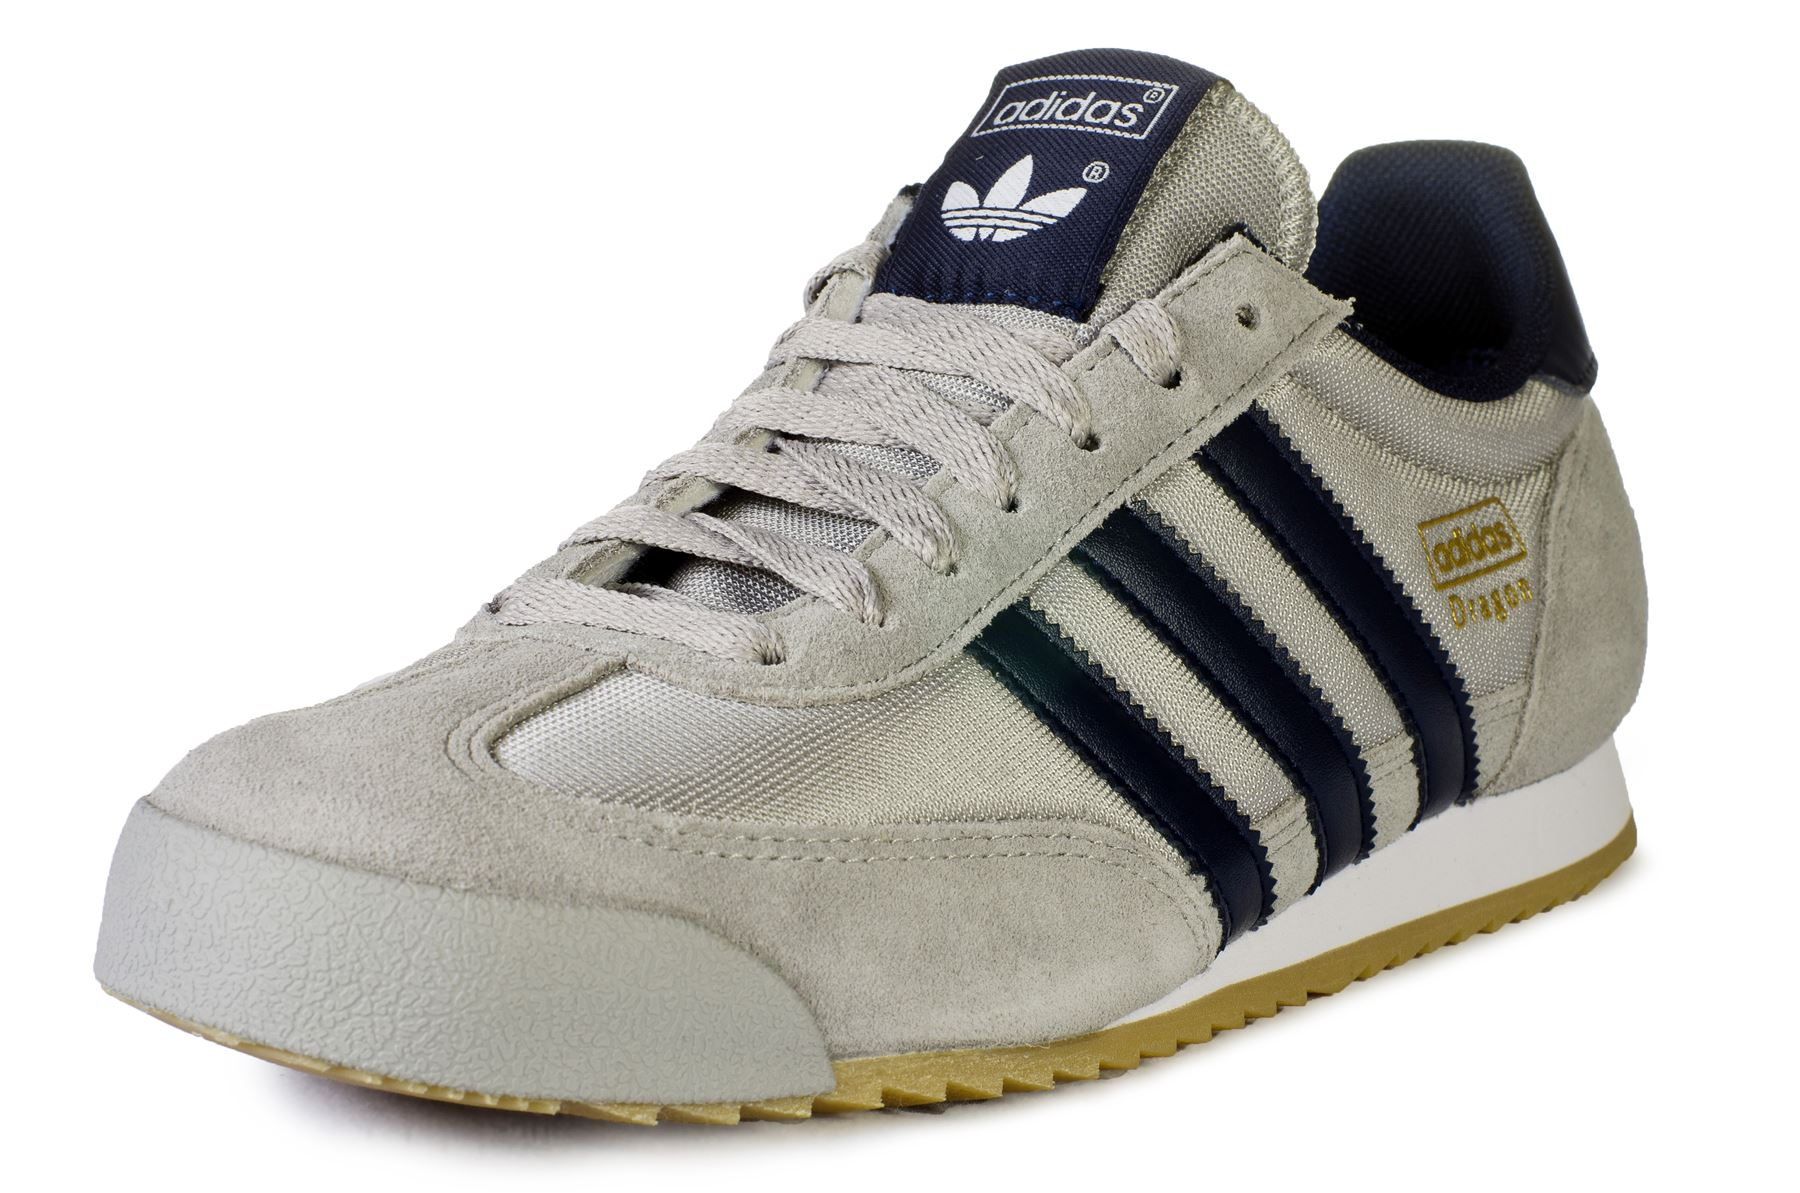 Adidas-Originals-Dragon-Suede-Retro-Trainers-in-All-